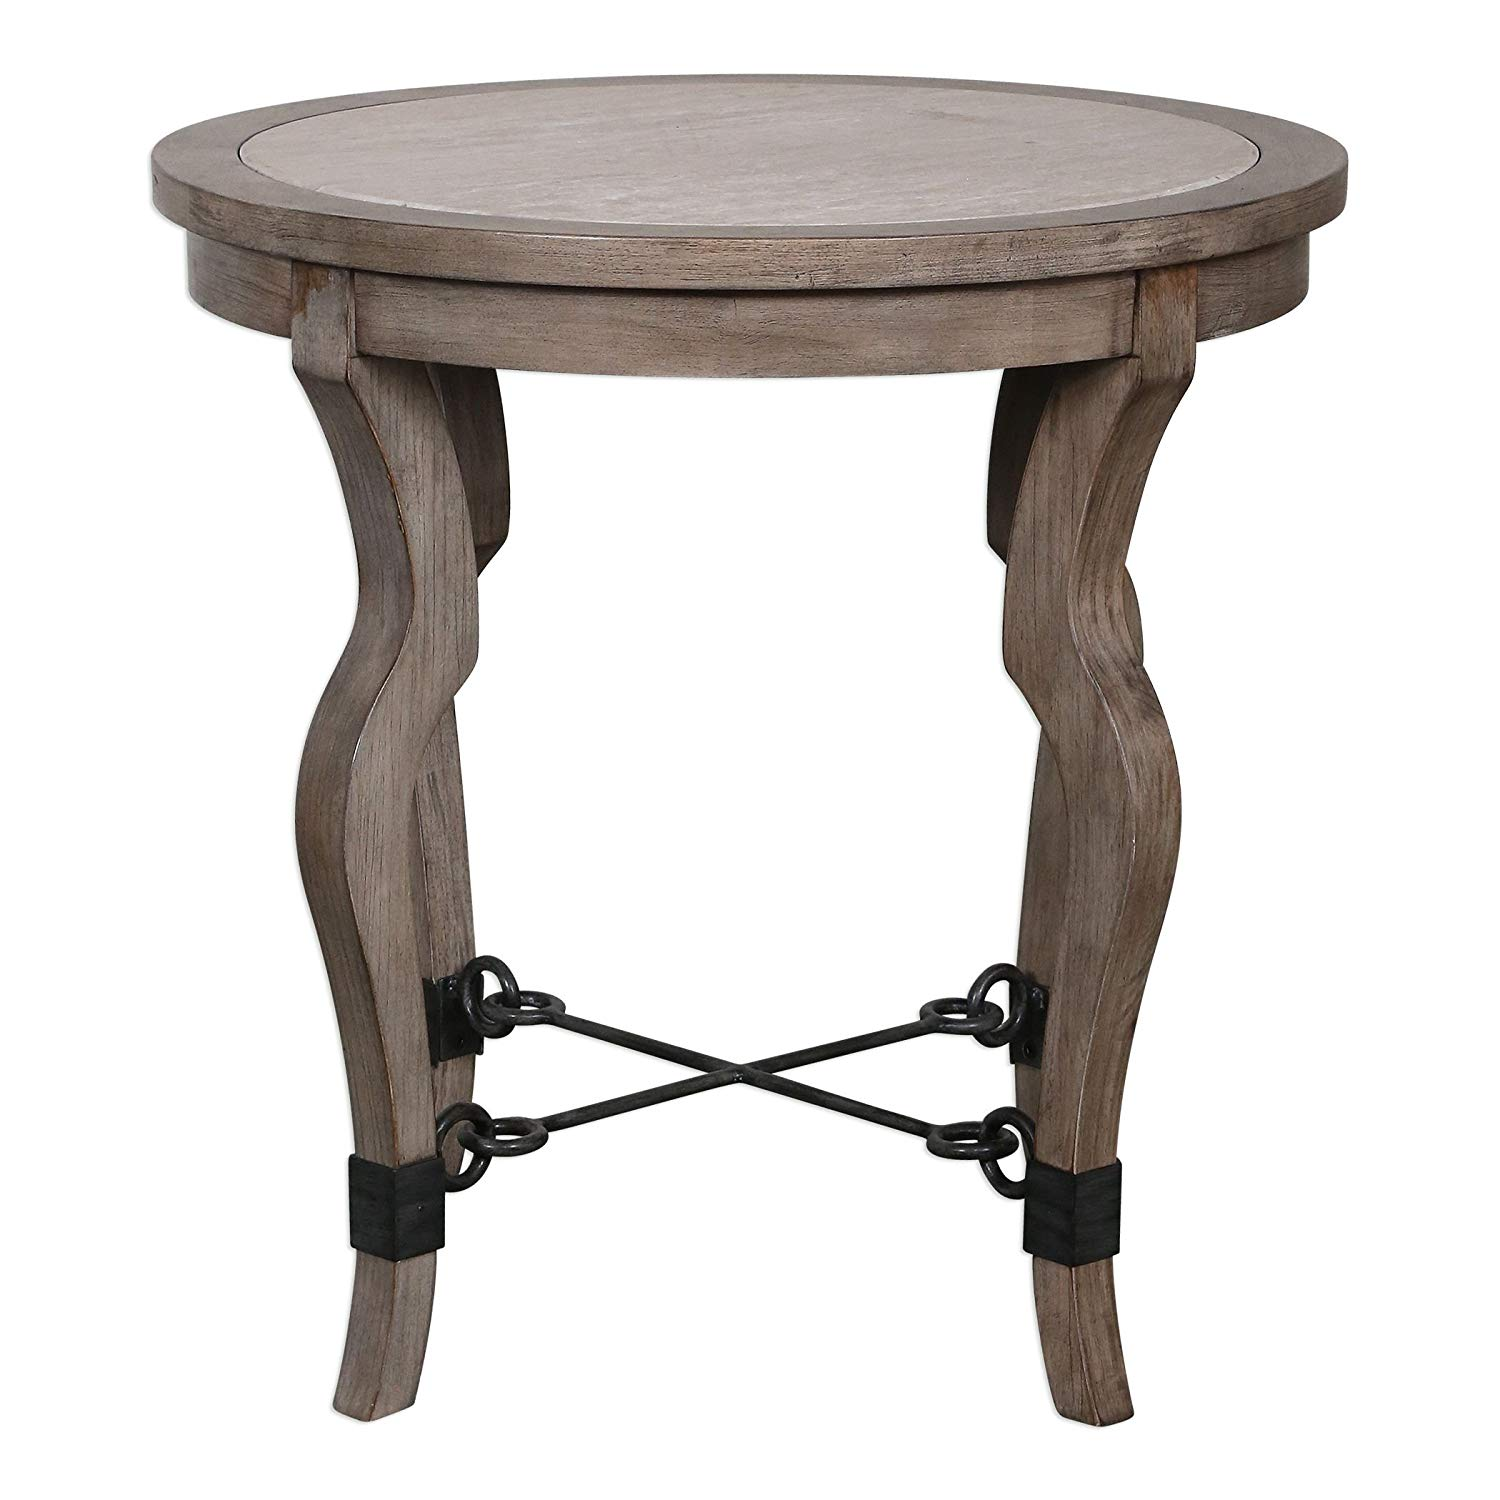 luxe curved weathered wood round accent table inlay travertine light stone kitchen dining glass top coffee and end tables gray brown ashley signature outdoor winter cover inch